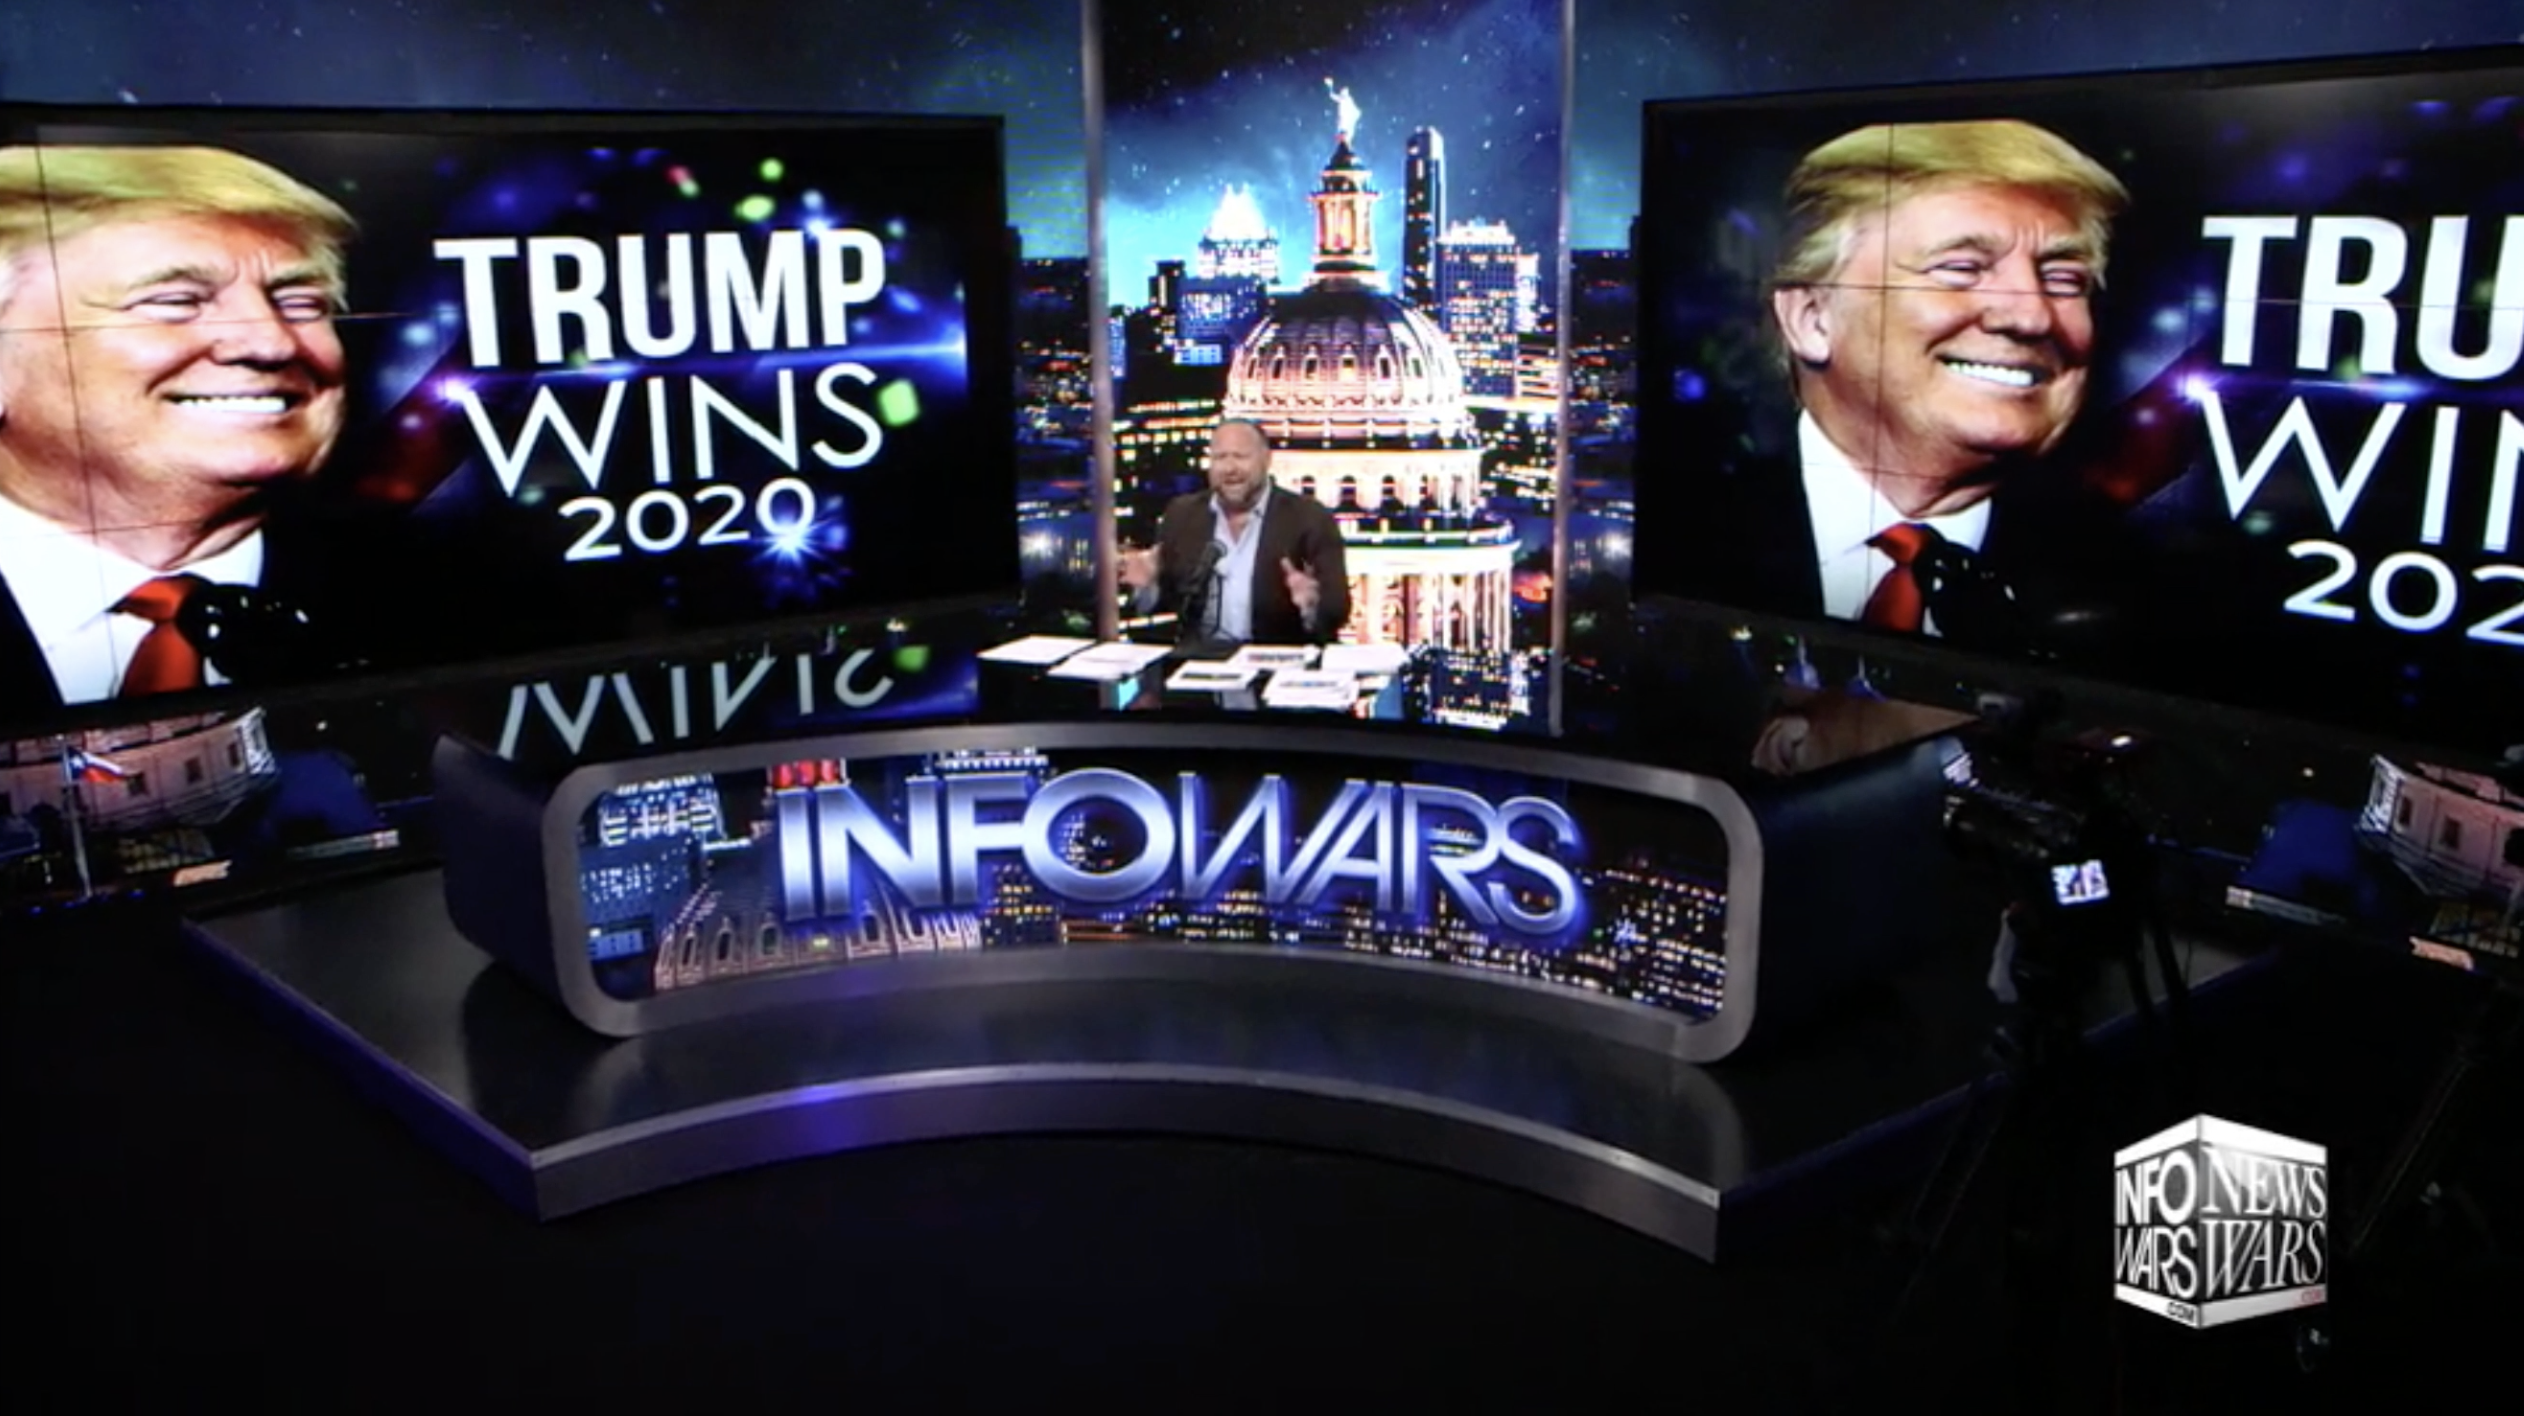 Alex Jones Infowars Studio Trump Wins Election 2020 EXZM September 7th 2020